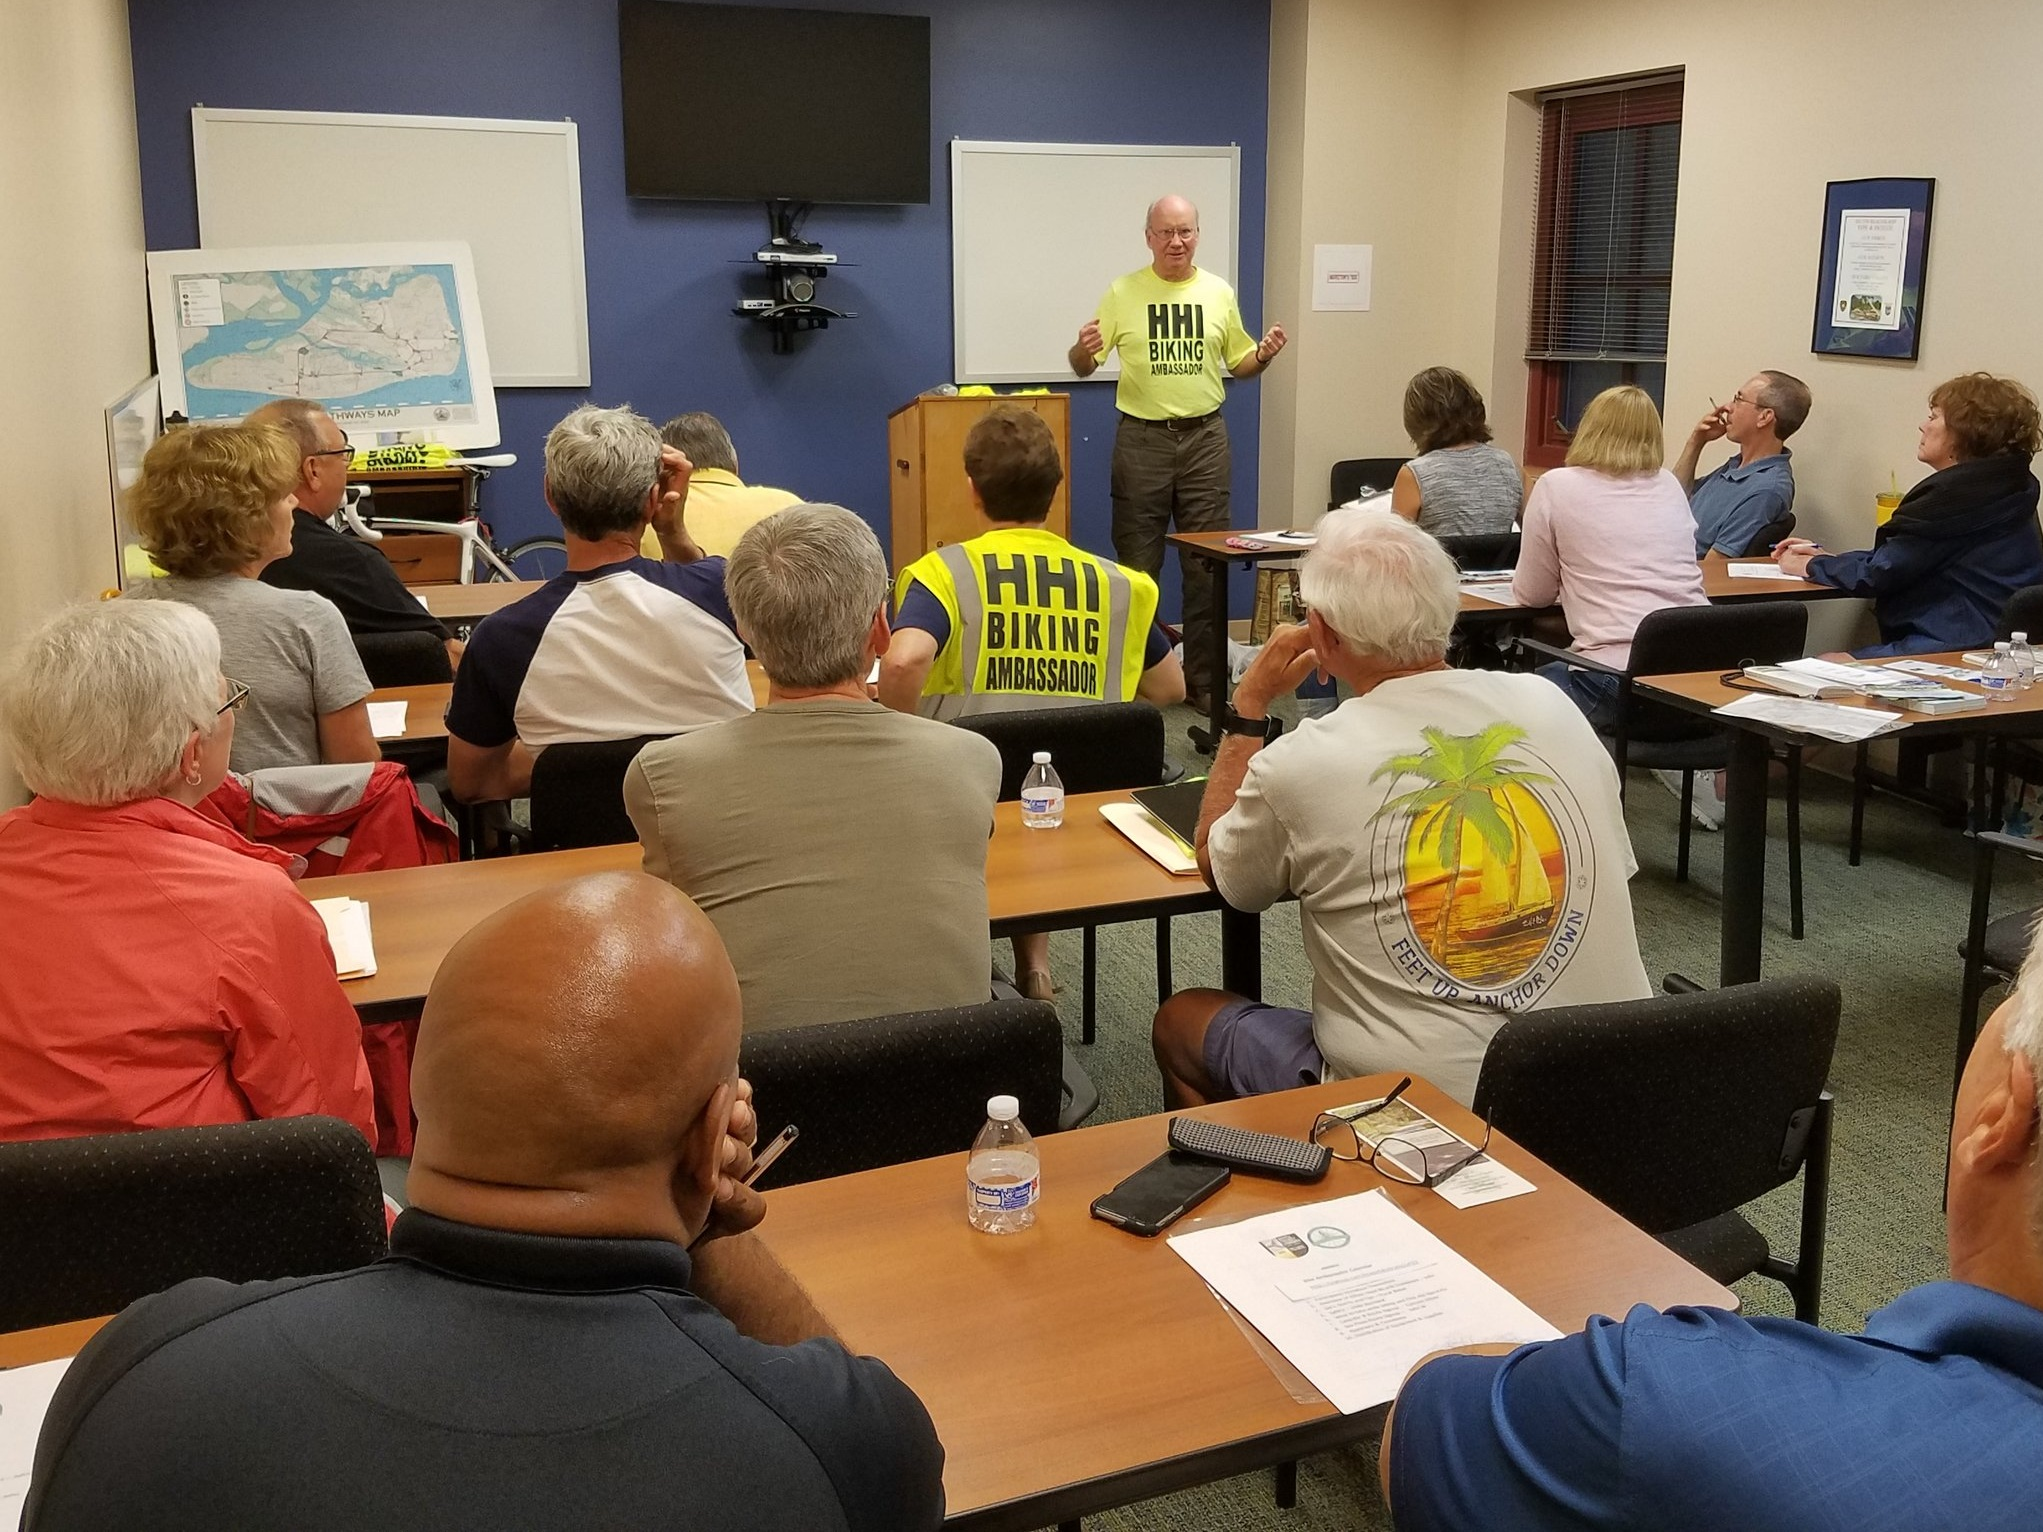 John Witherspoon presents information for new Bike Ambassador trainees.